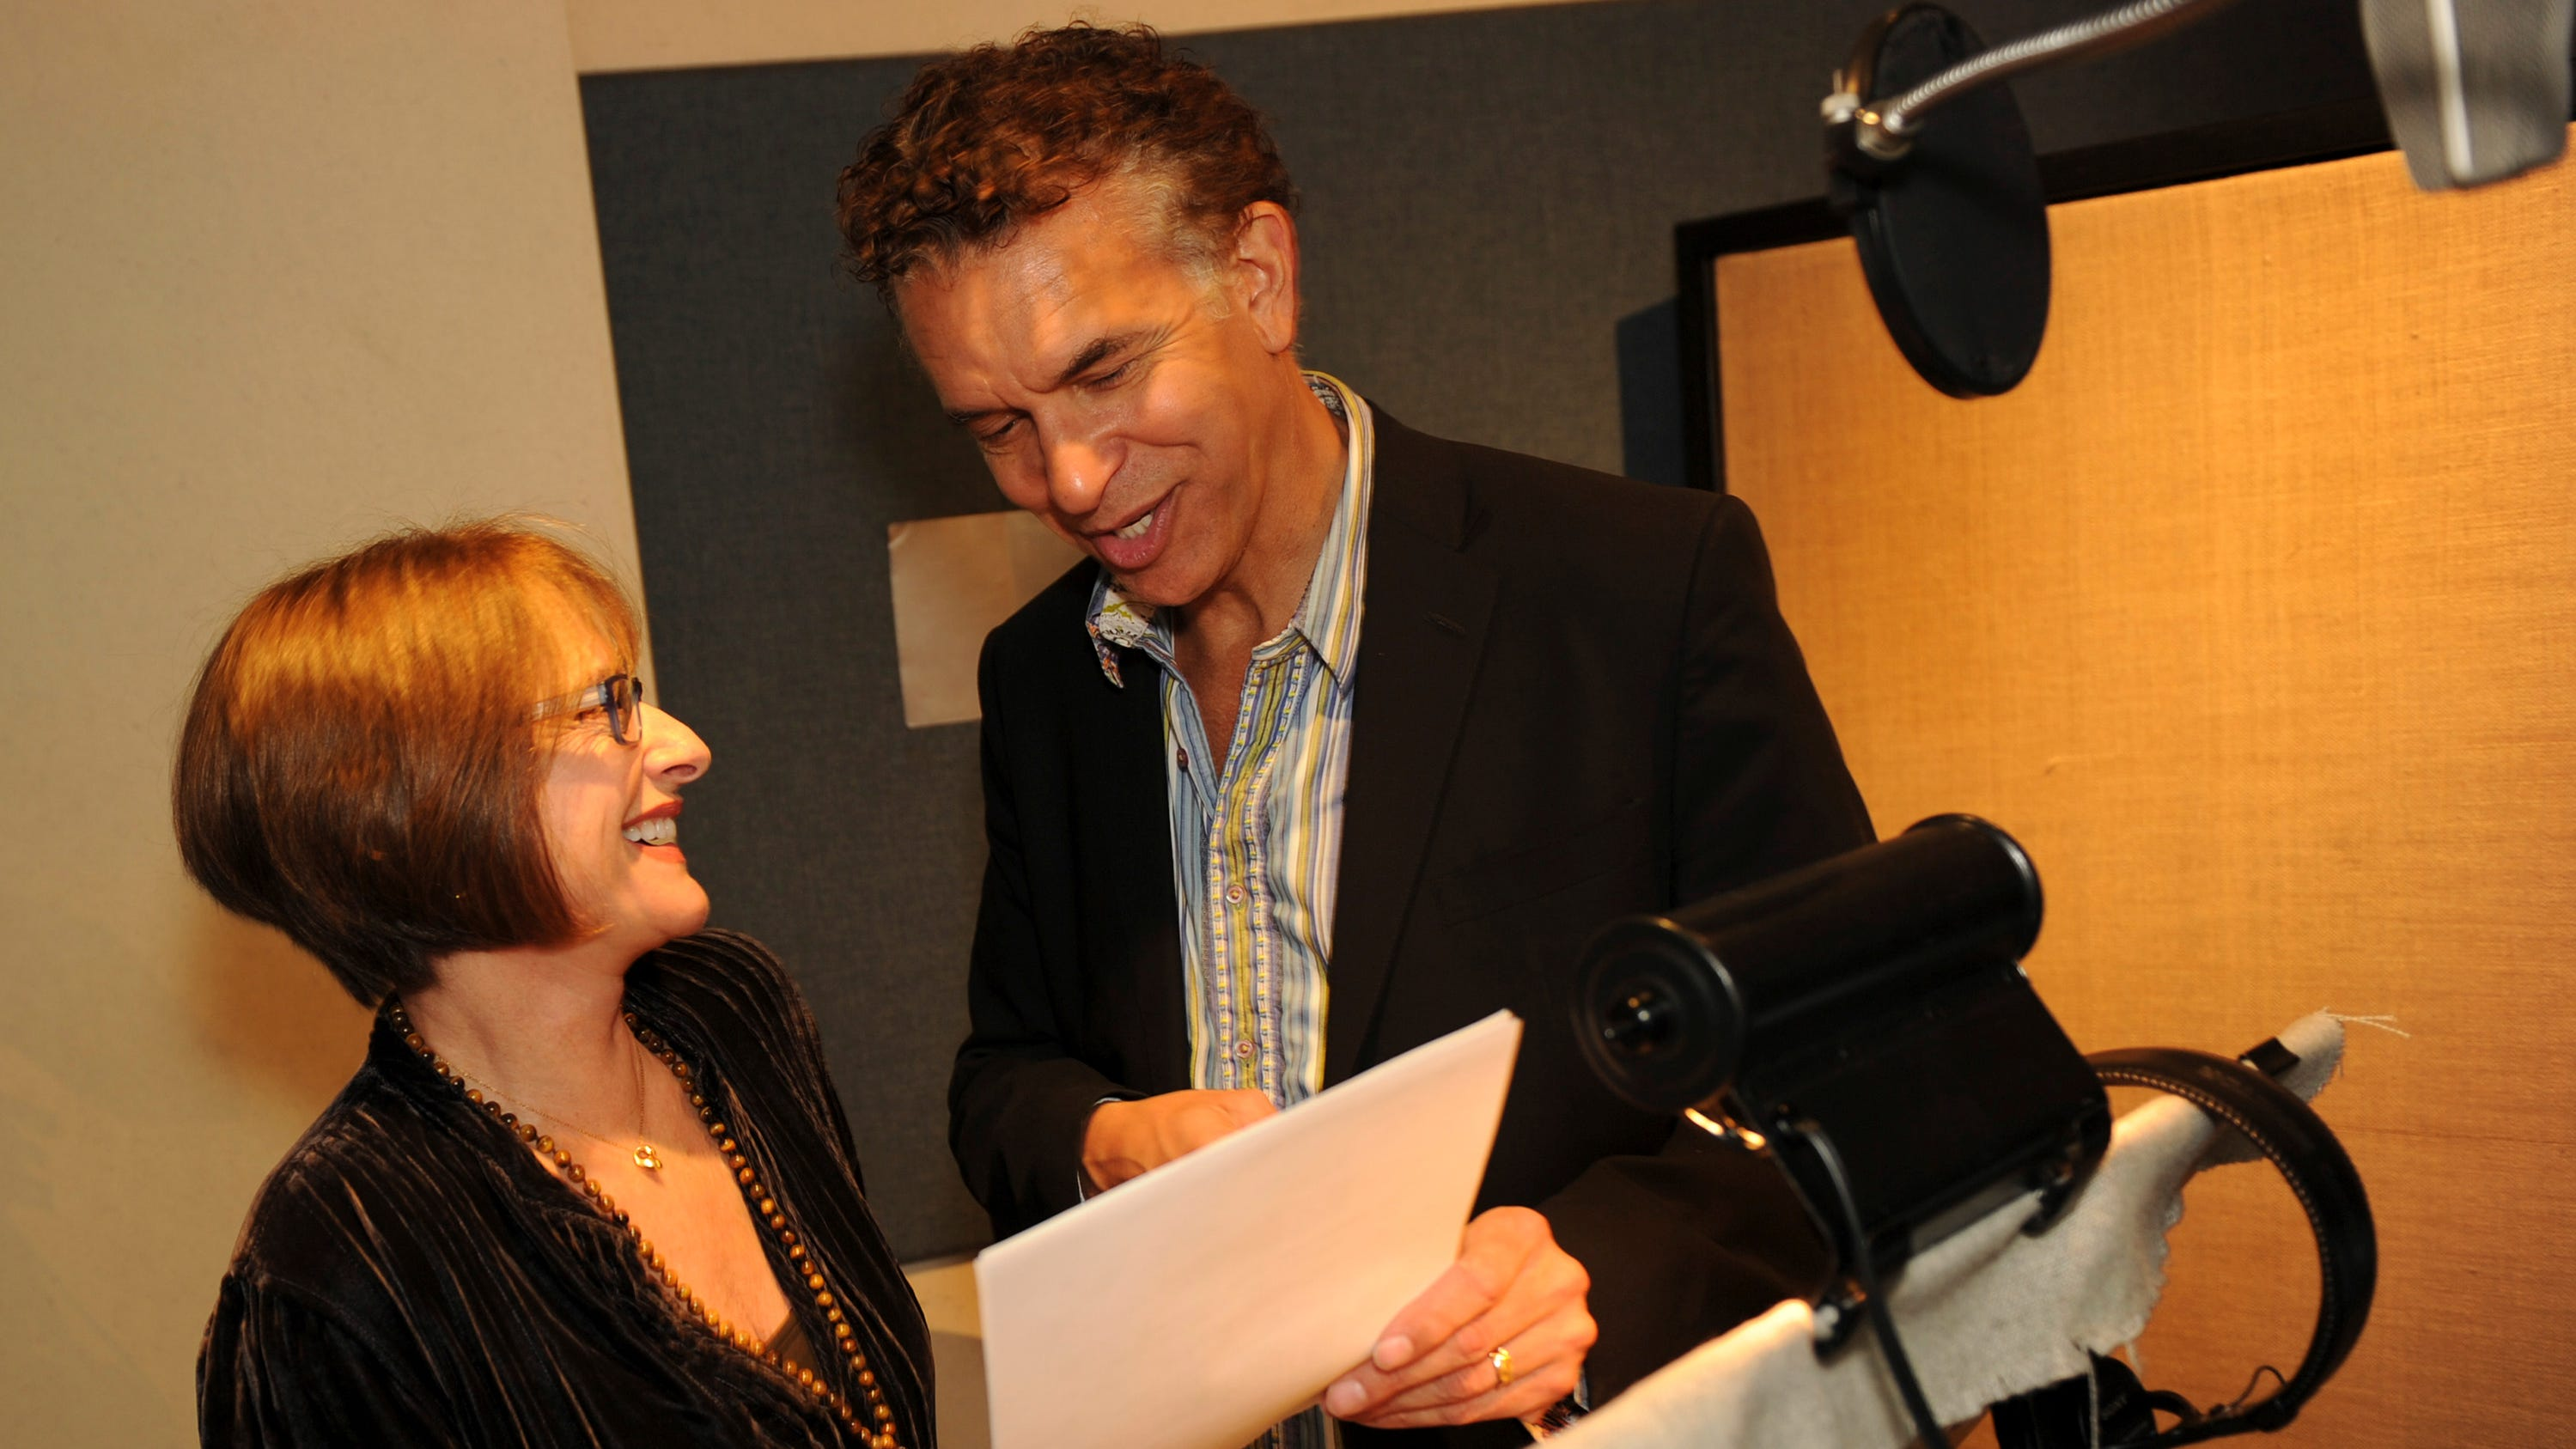 Exclusive: See Broadway stars Patti LuPone, Brian Stokes Mitchell get animated in 'Vampirina'